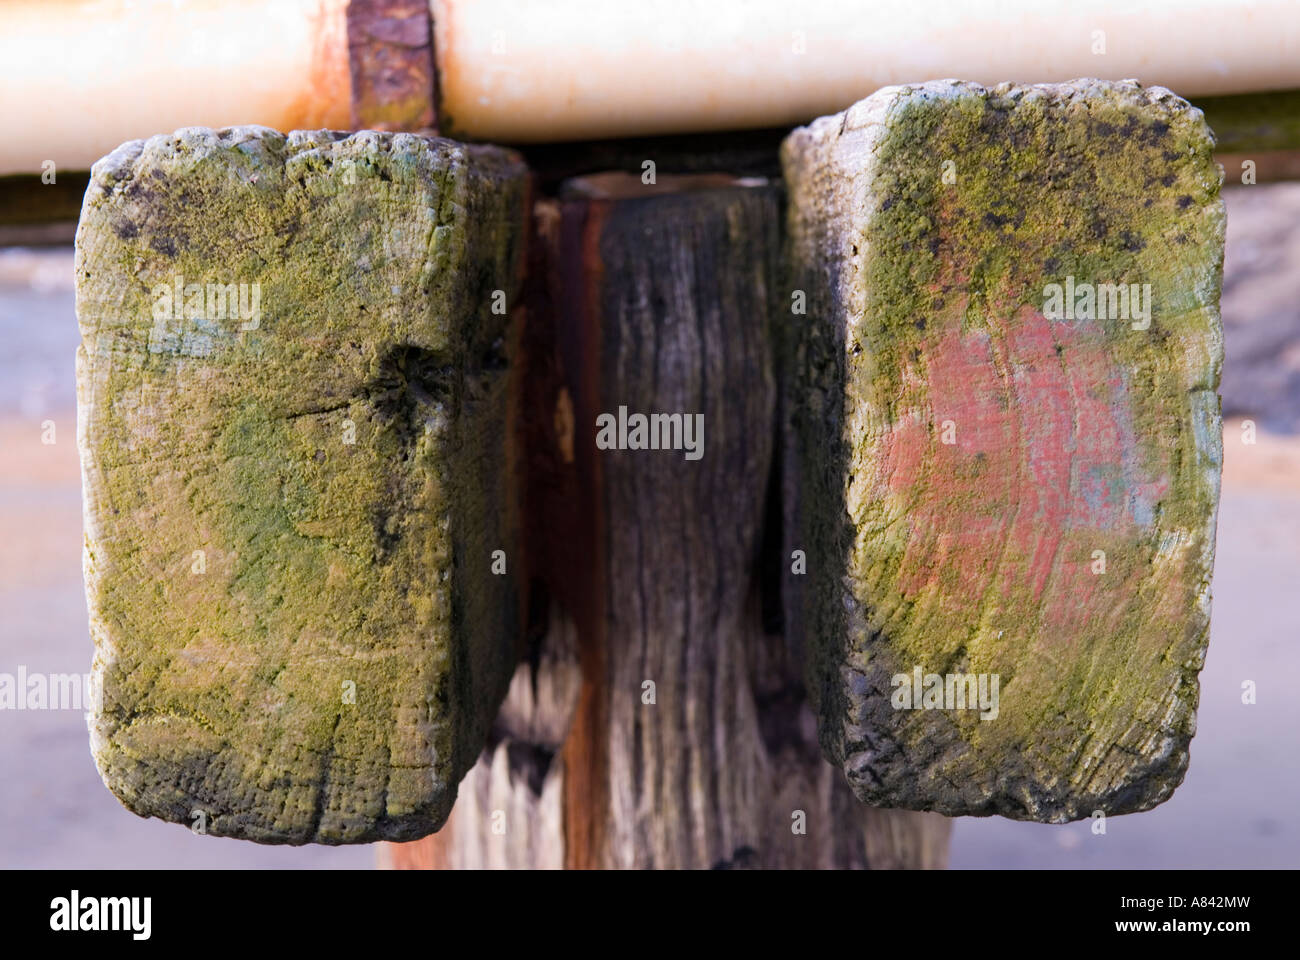 Green mould on seaside jetty timbers - Stock Image